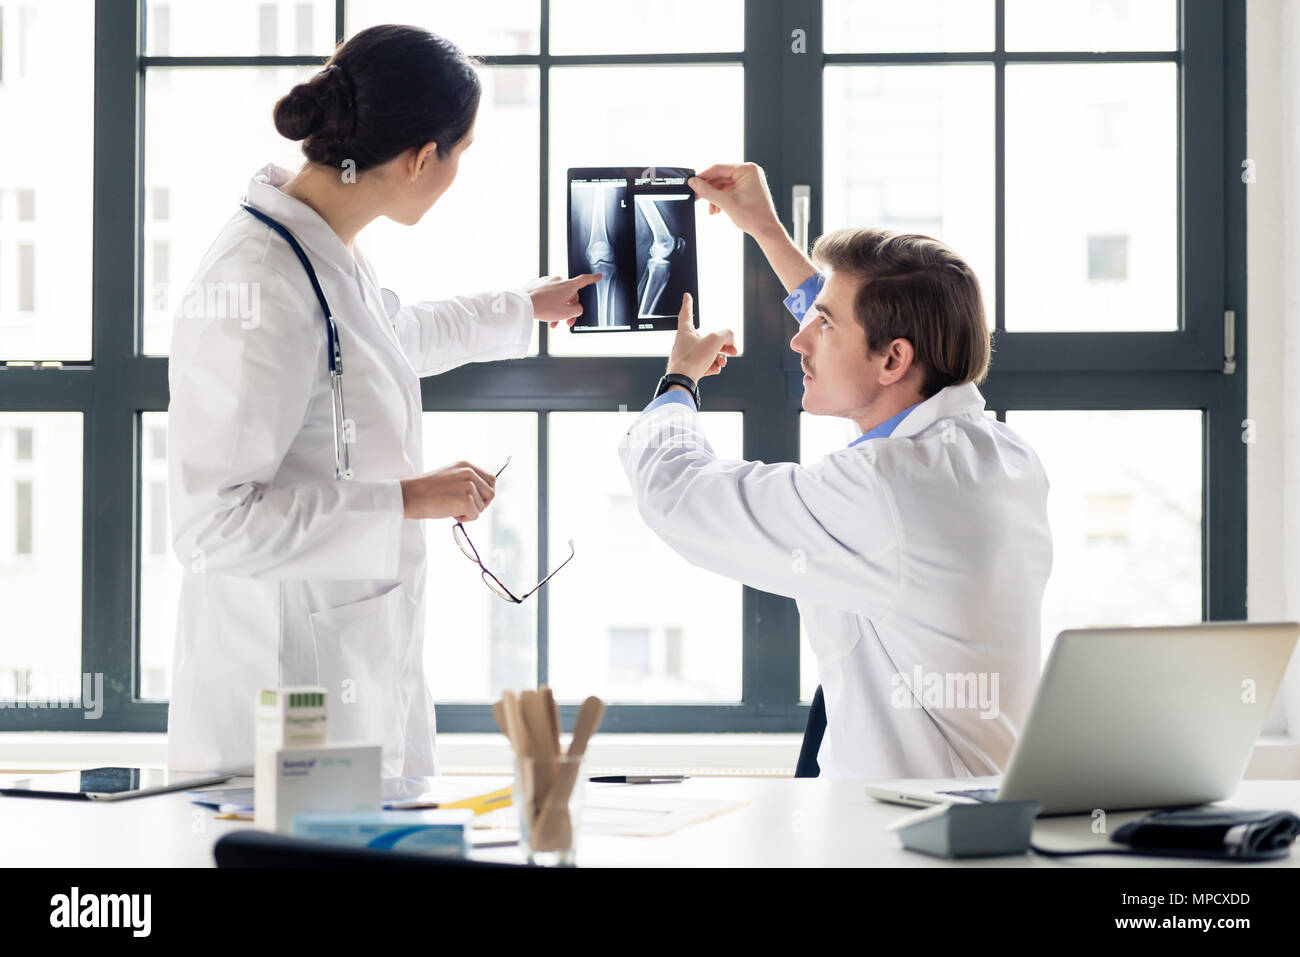 Experienced orthopedist helping his colleague - Stock Image